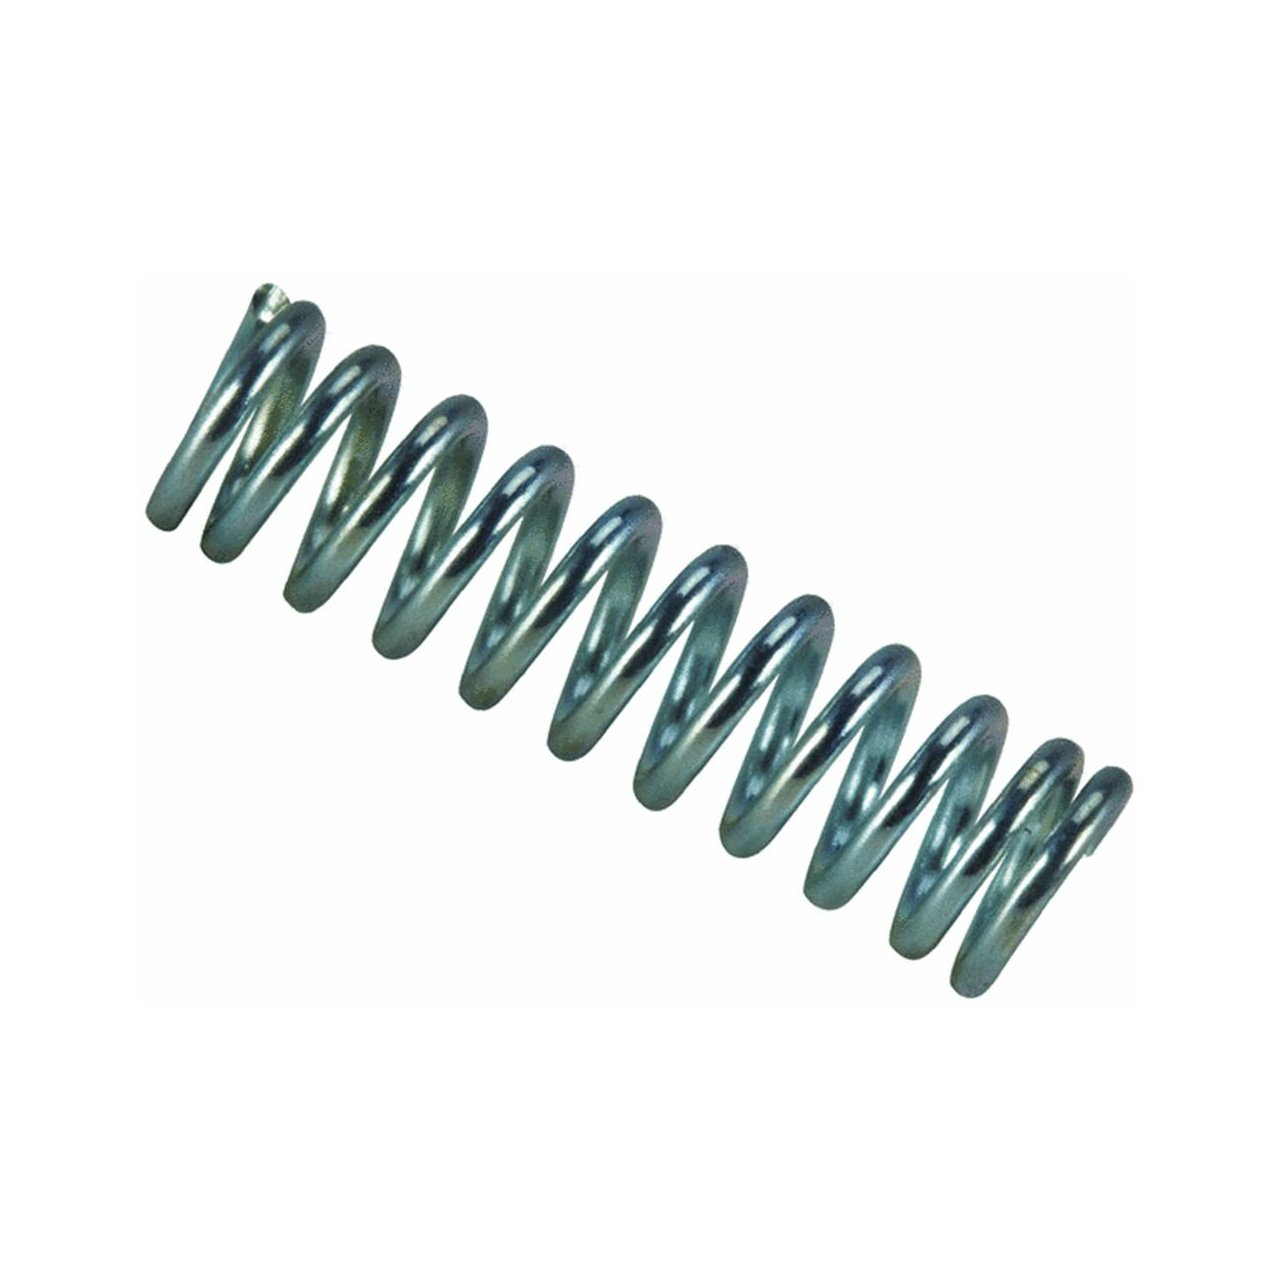 CENTURY SPRING C 750 Compression Spring 2 Pack 3 4